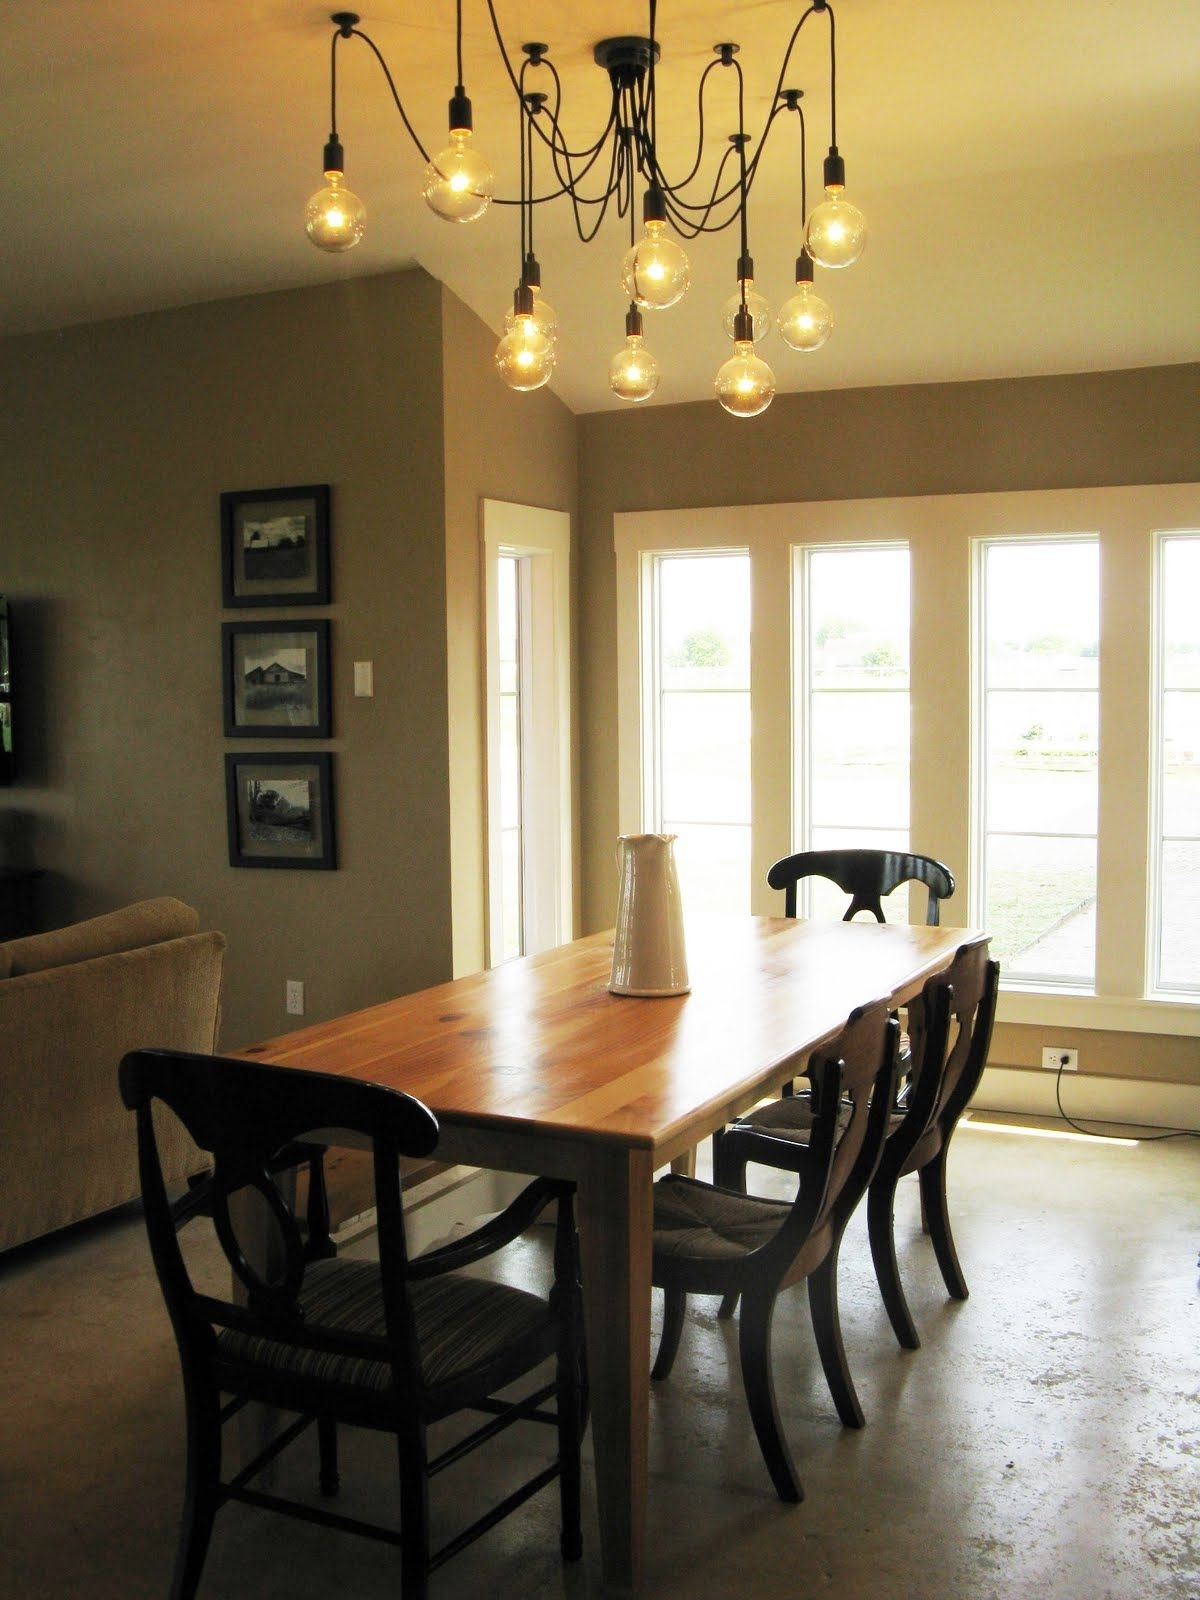 Dining Tables Lighting Pertaining To Most Recent Dinning Room Table Light Fixture (View 6 of 25)